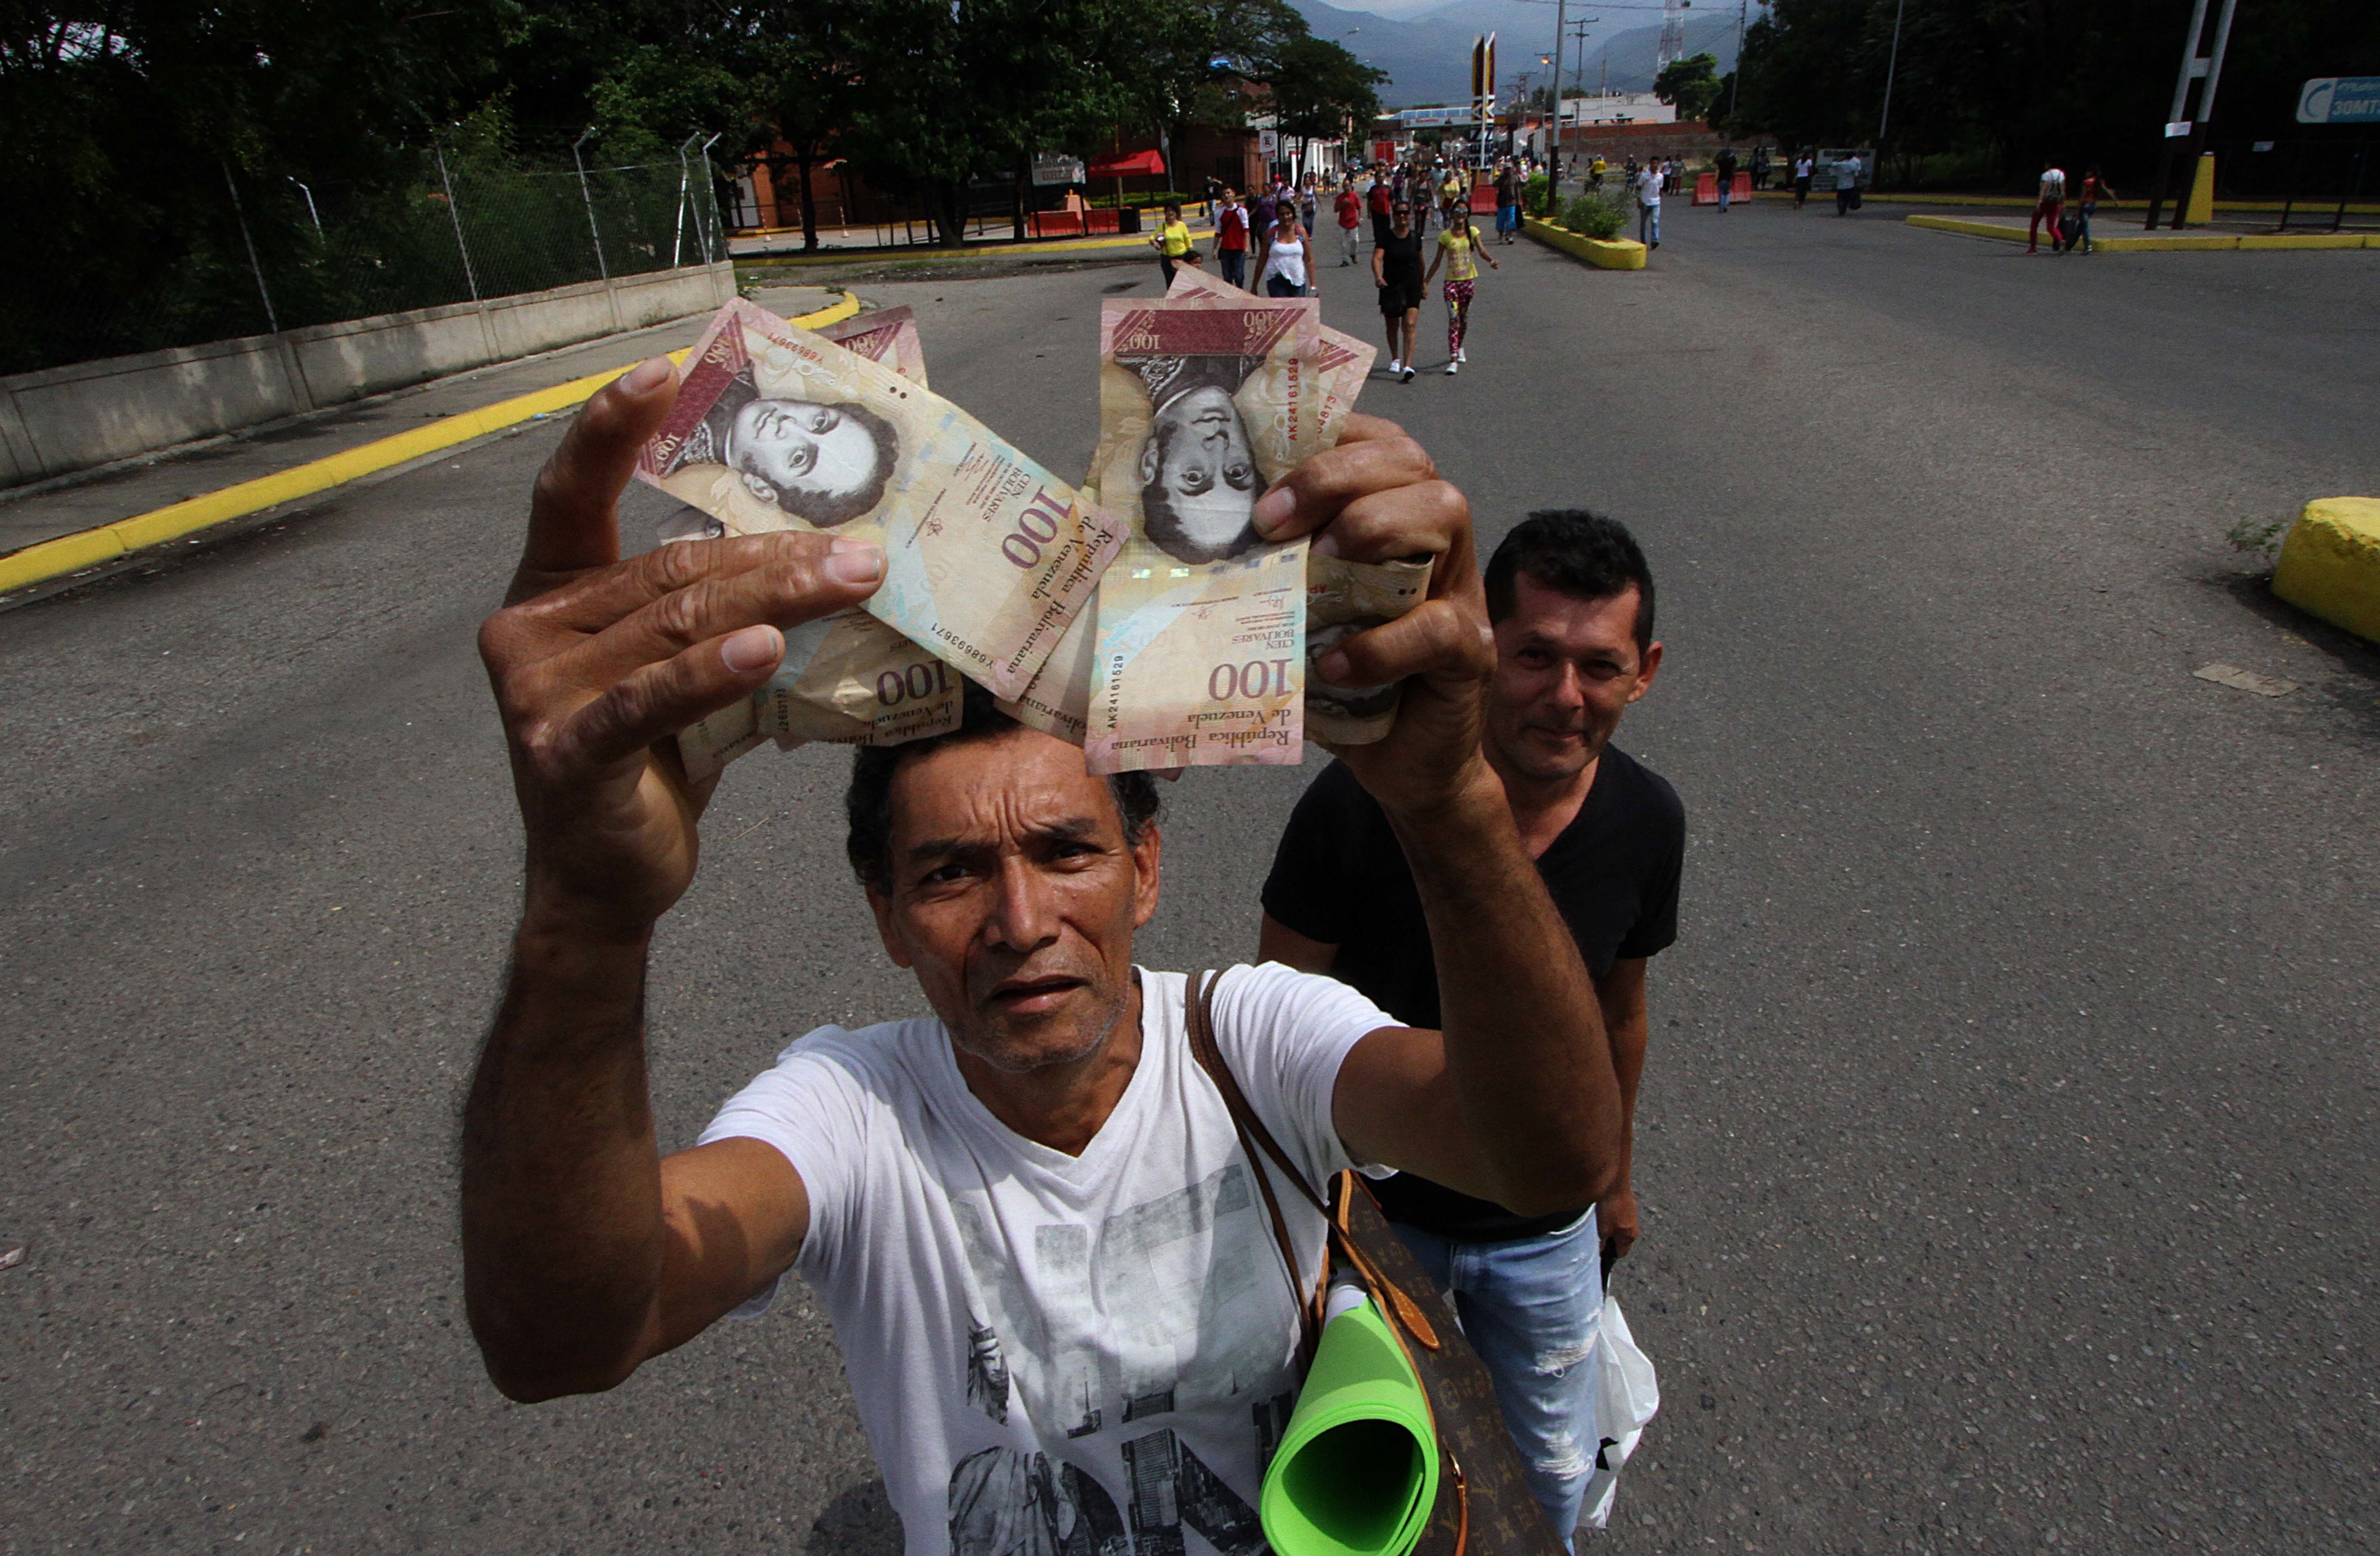 After Outbreak Of Looting, Venezuela Delays Phase-Out Of Large Currency